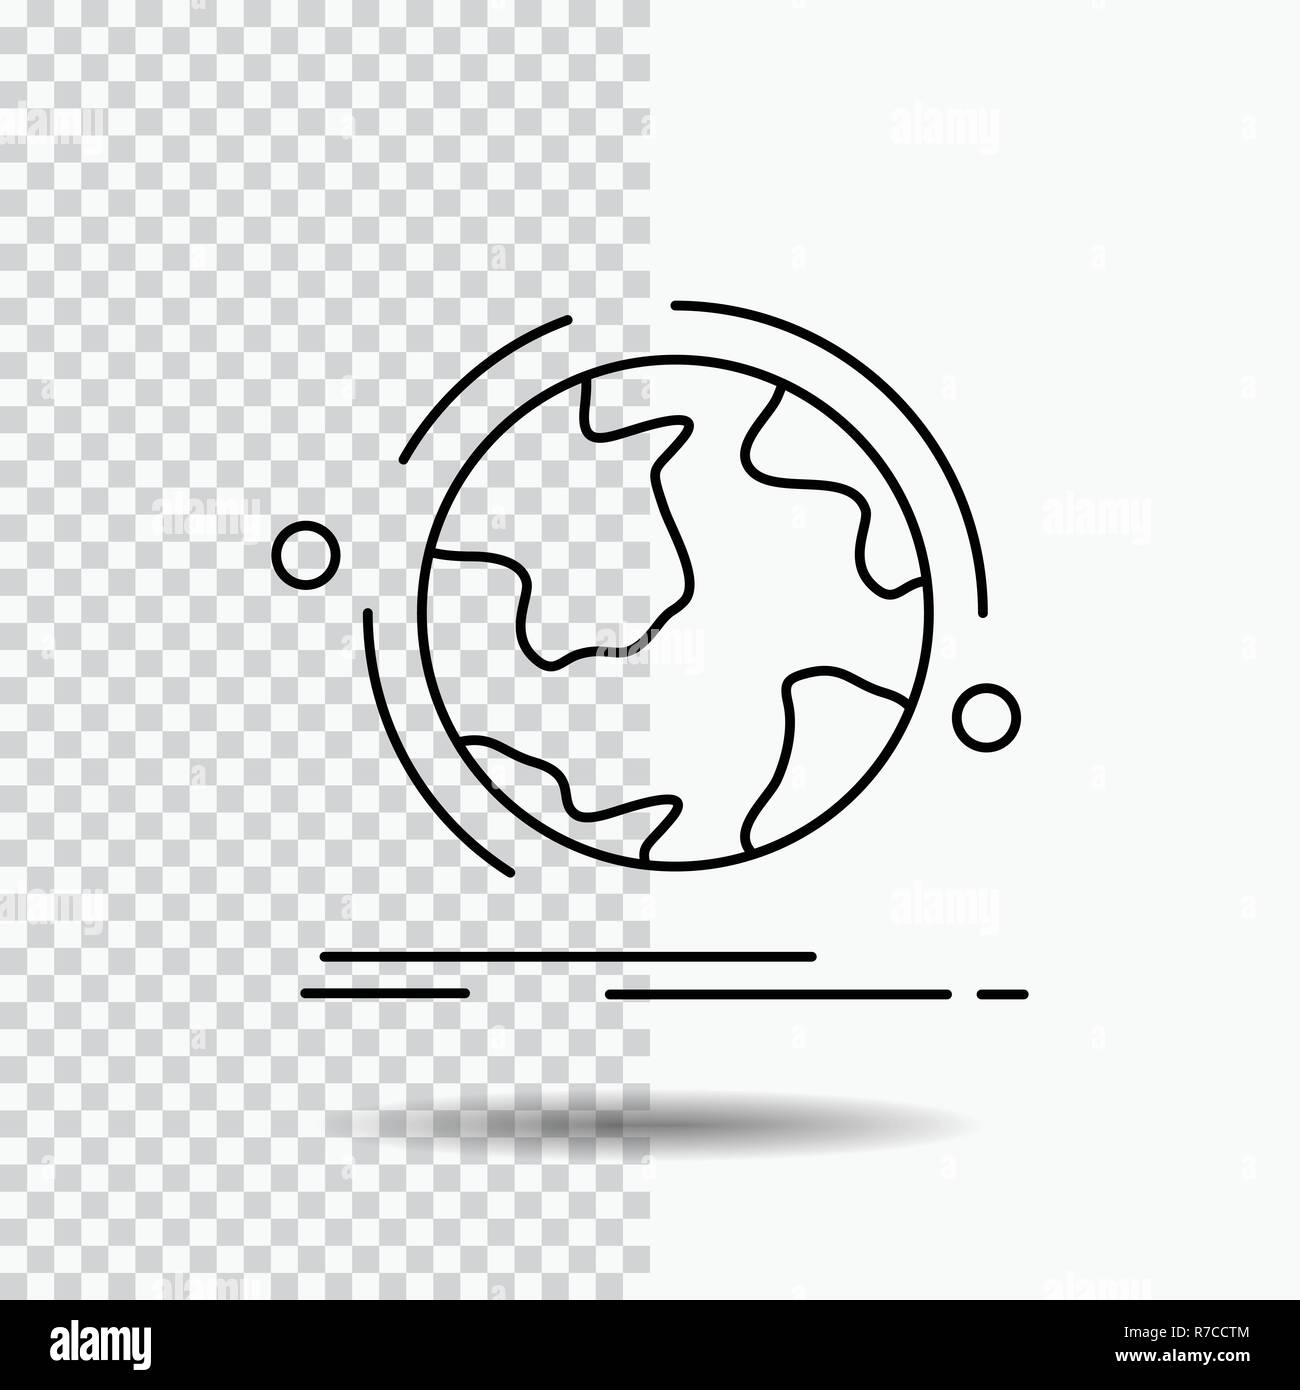 globe, world, discover, connection, network Line Icon on